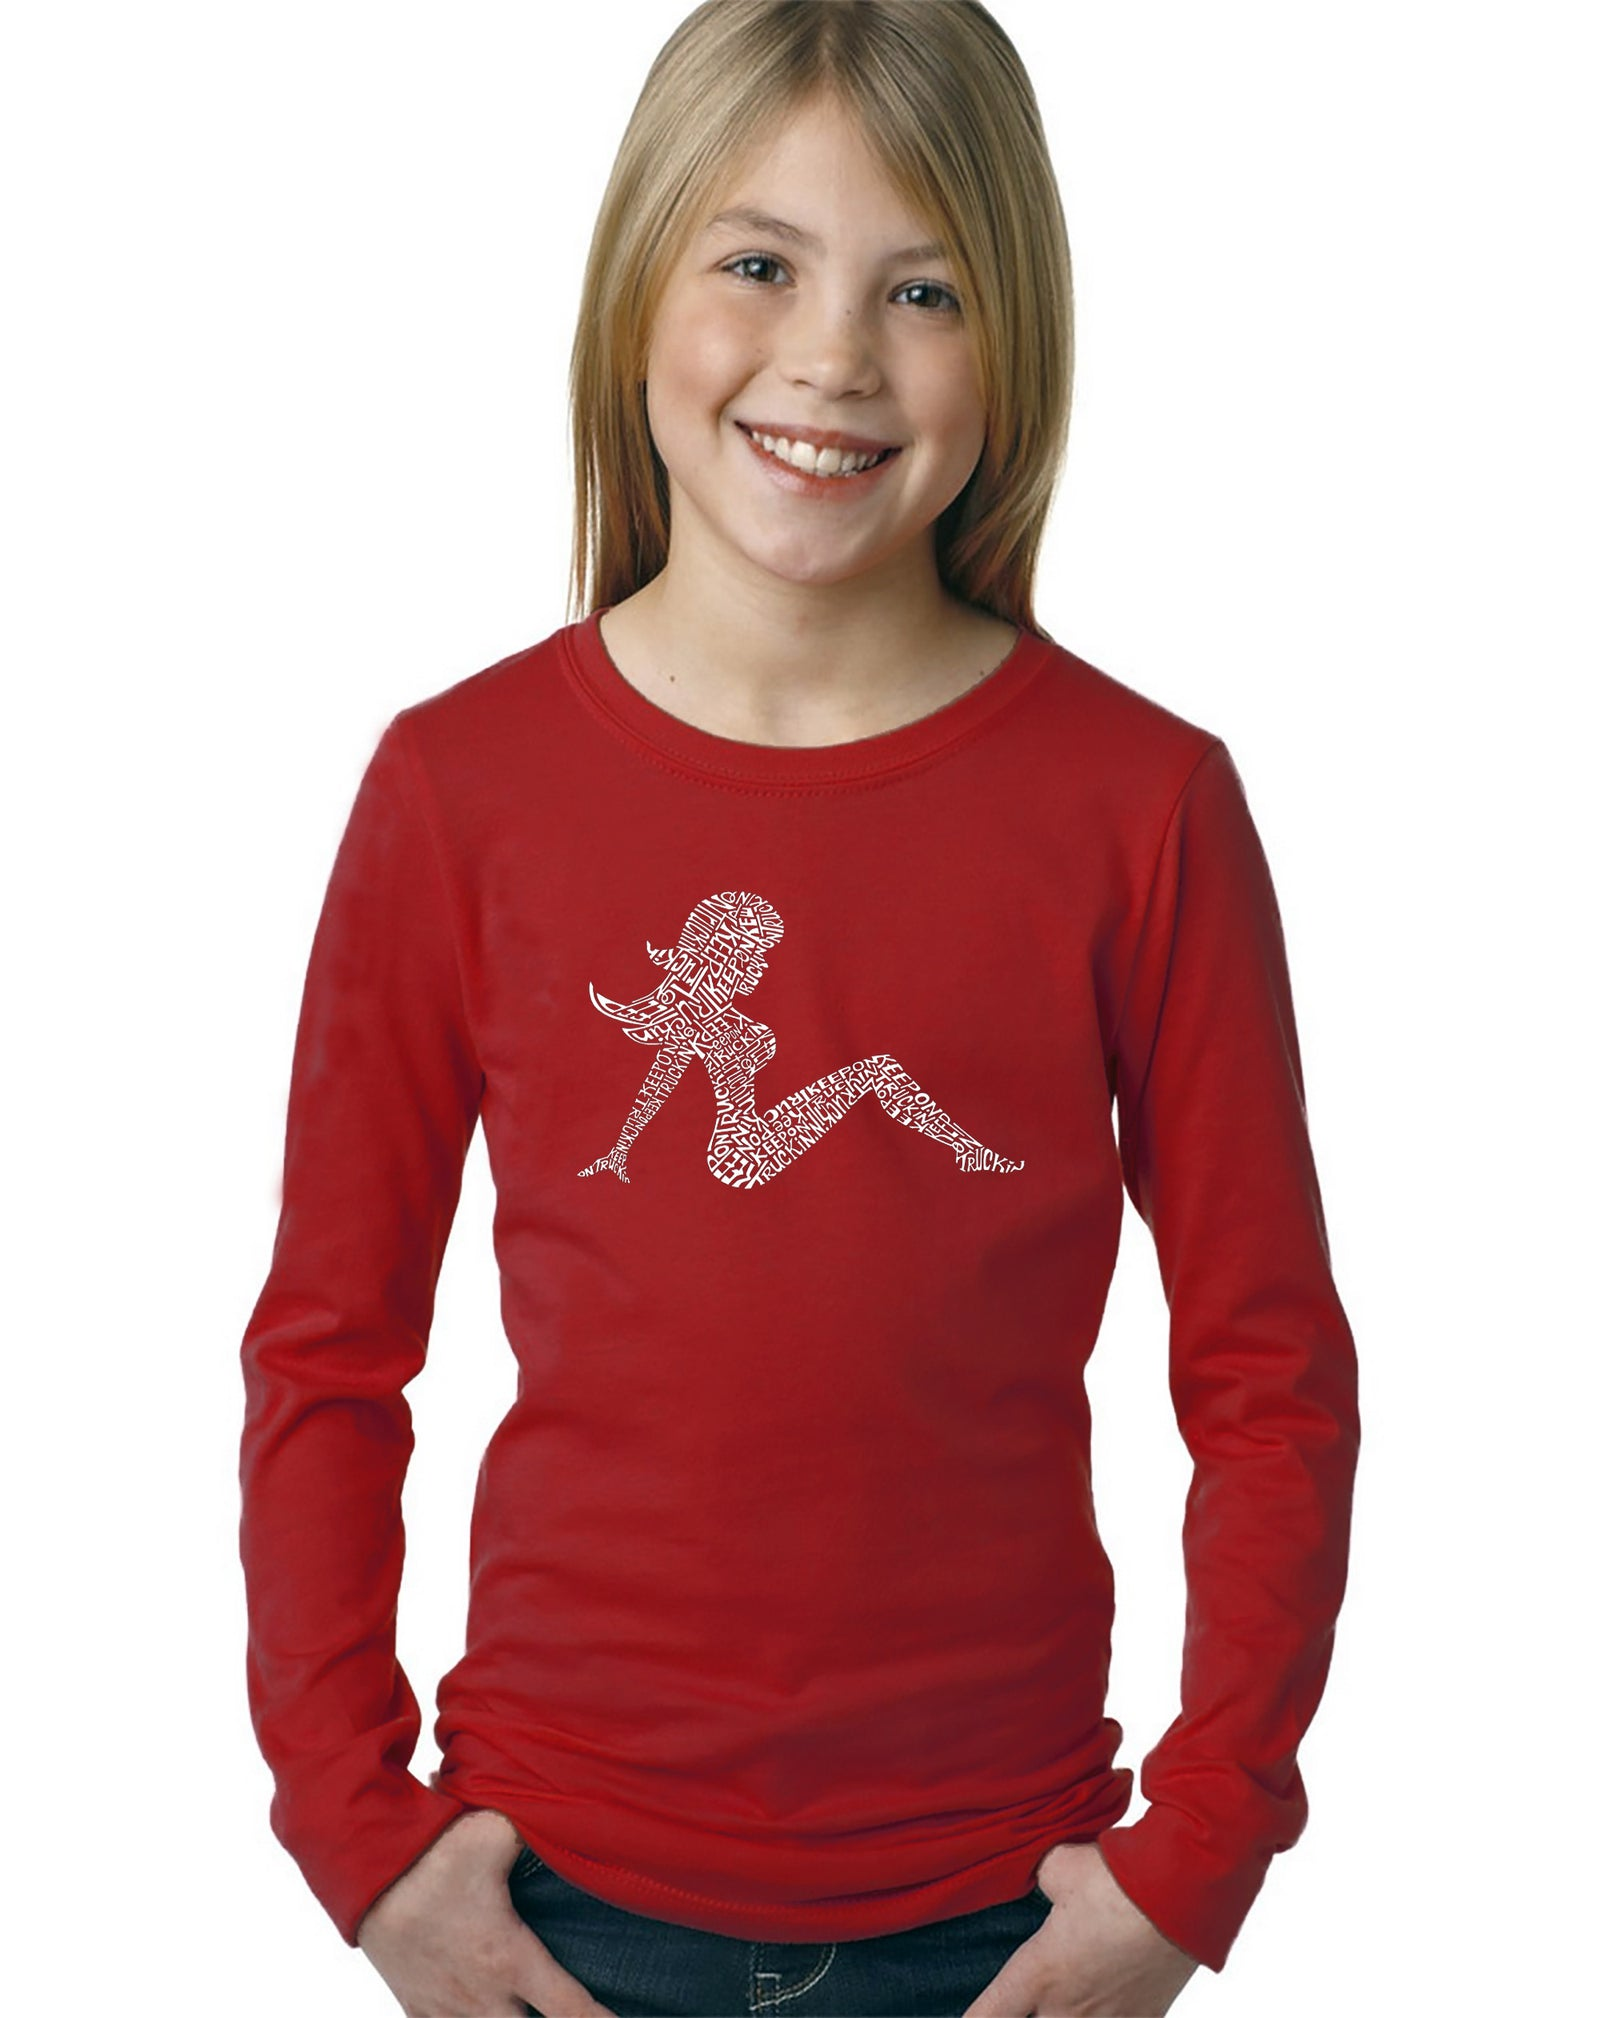 Girl's Long Sleeve - Mudflap Girl - Keep on Truckin